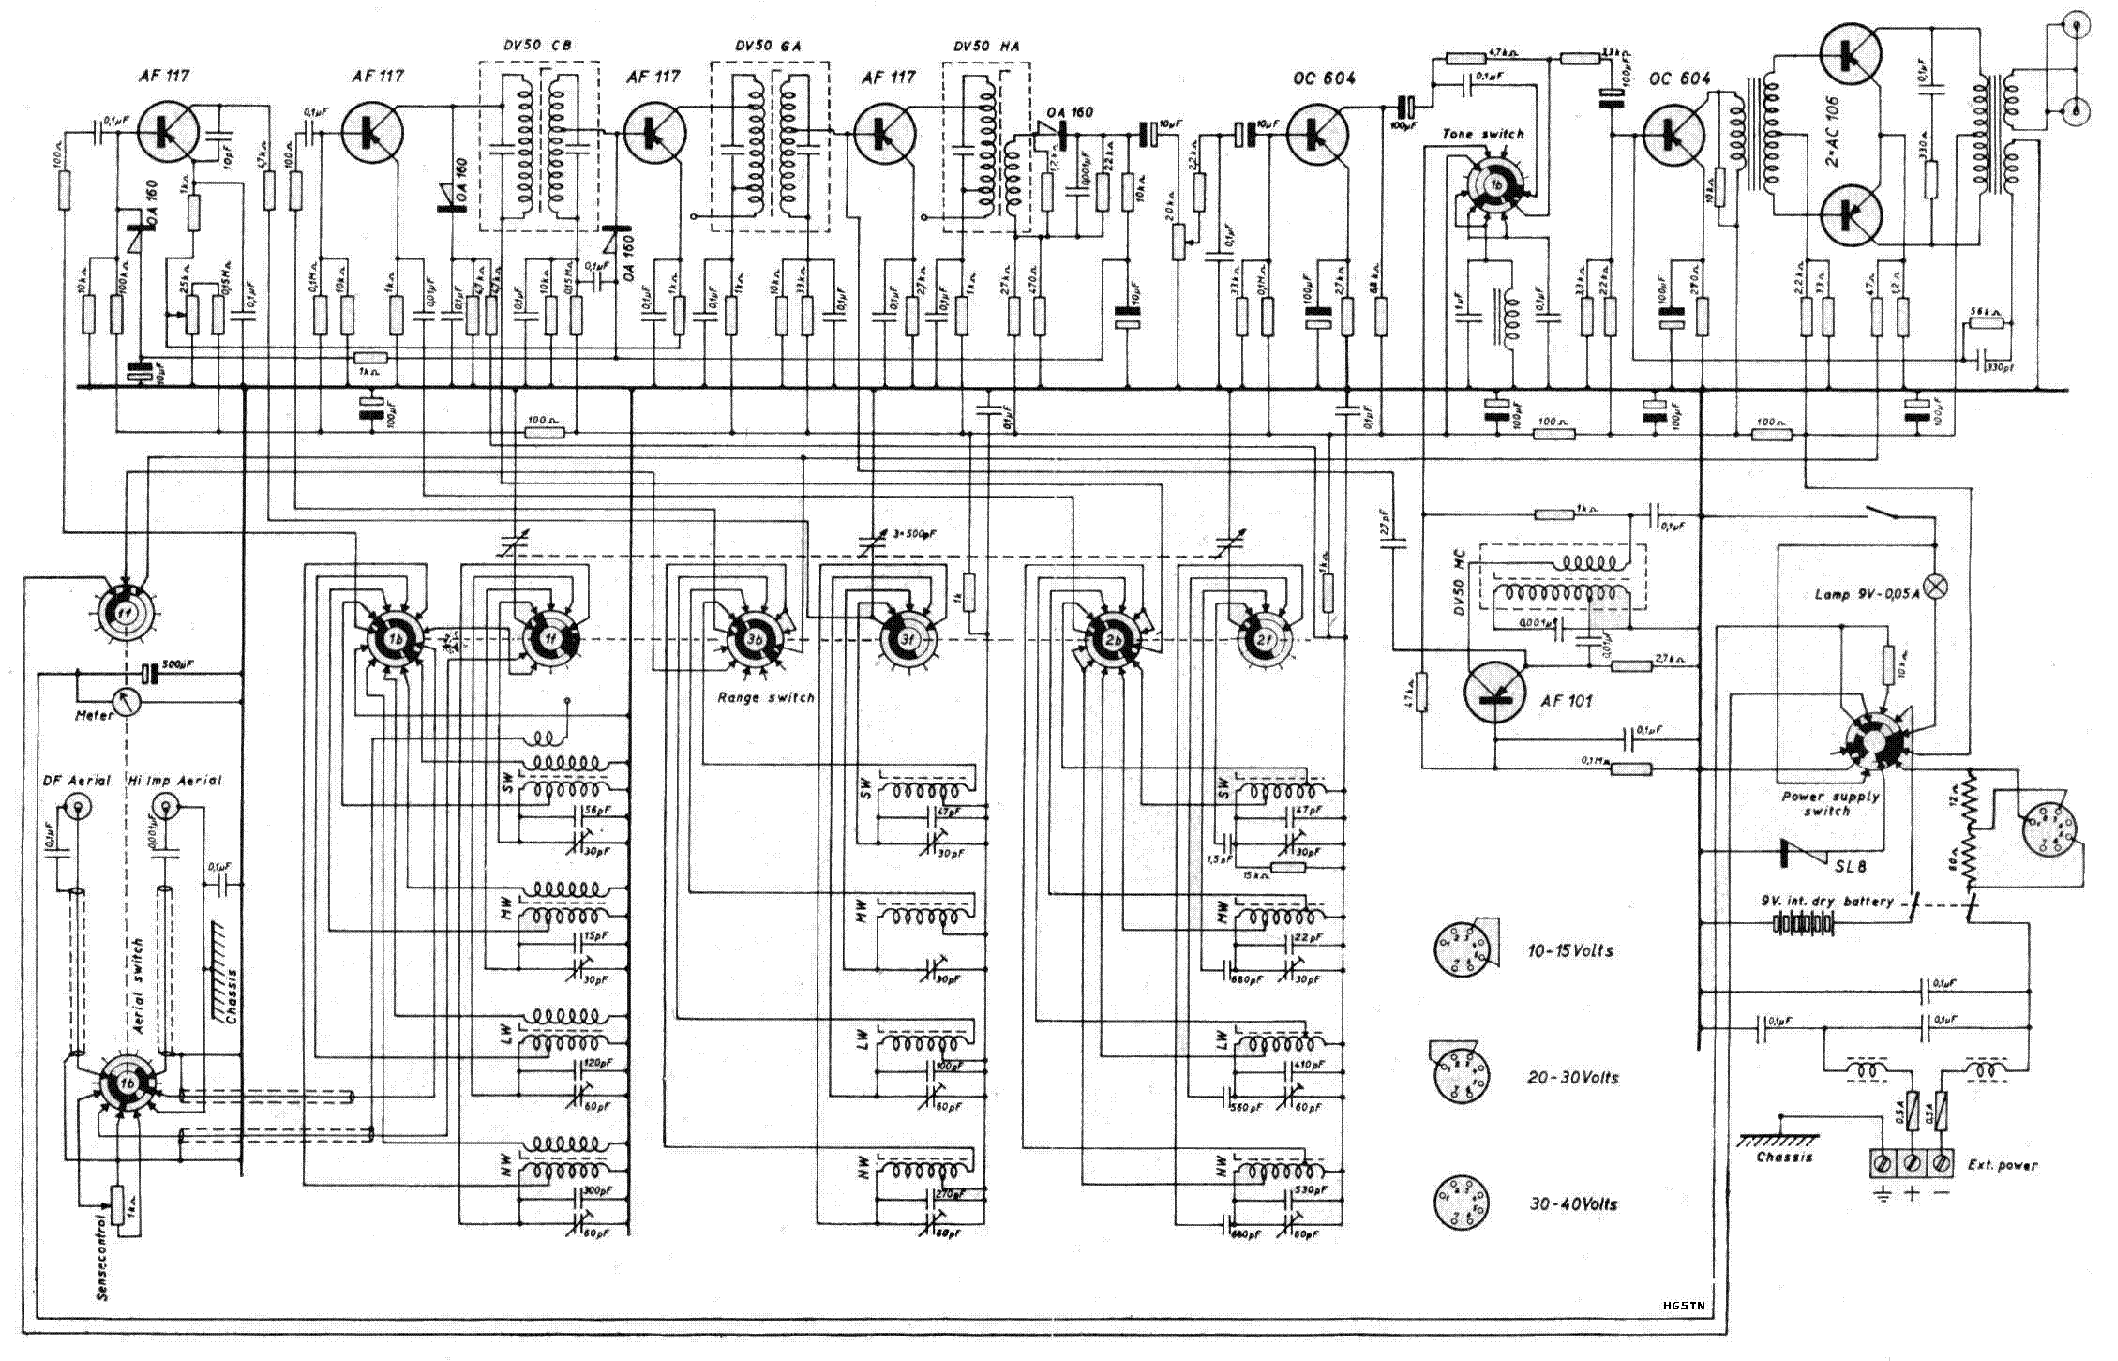 Sailor 16t Radio Receiver Service Manual Download  Schematics  Eeprom  Repair Info For